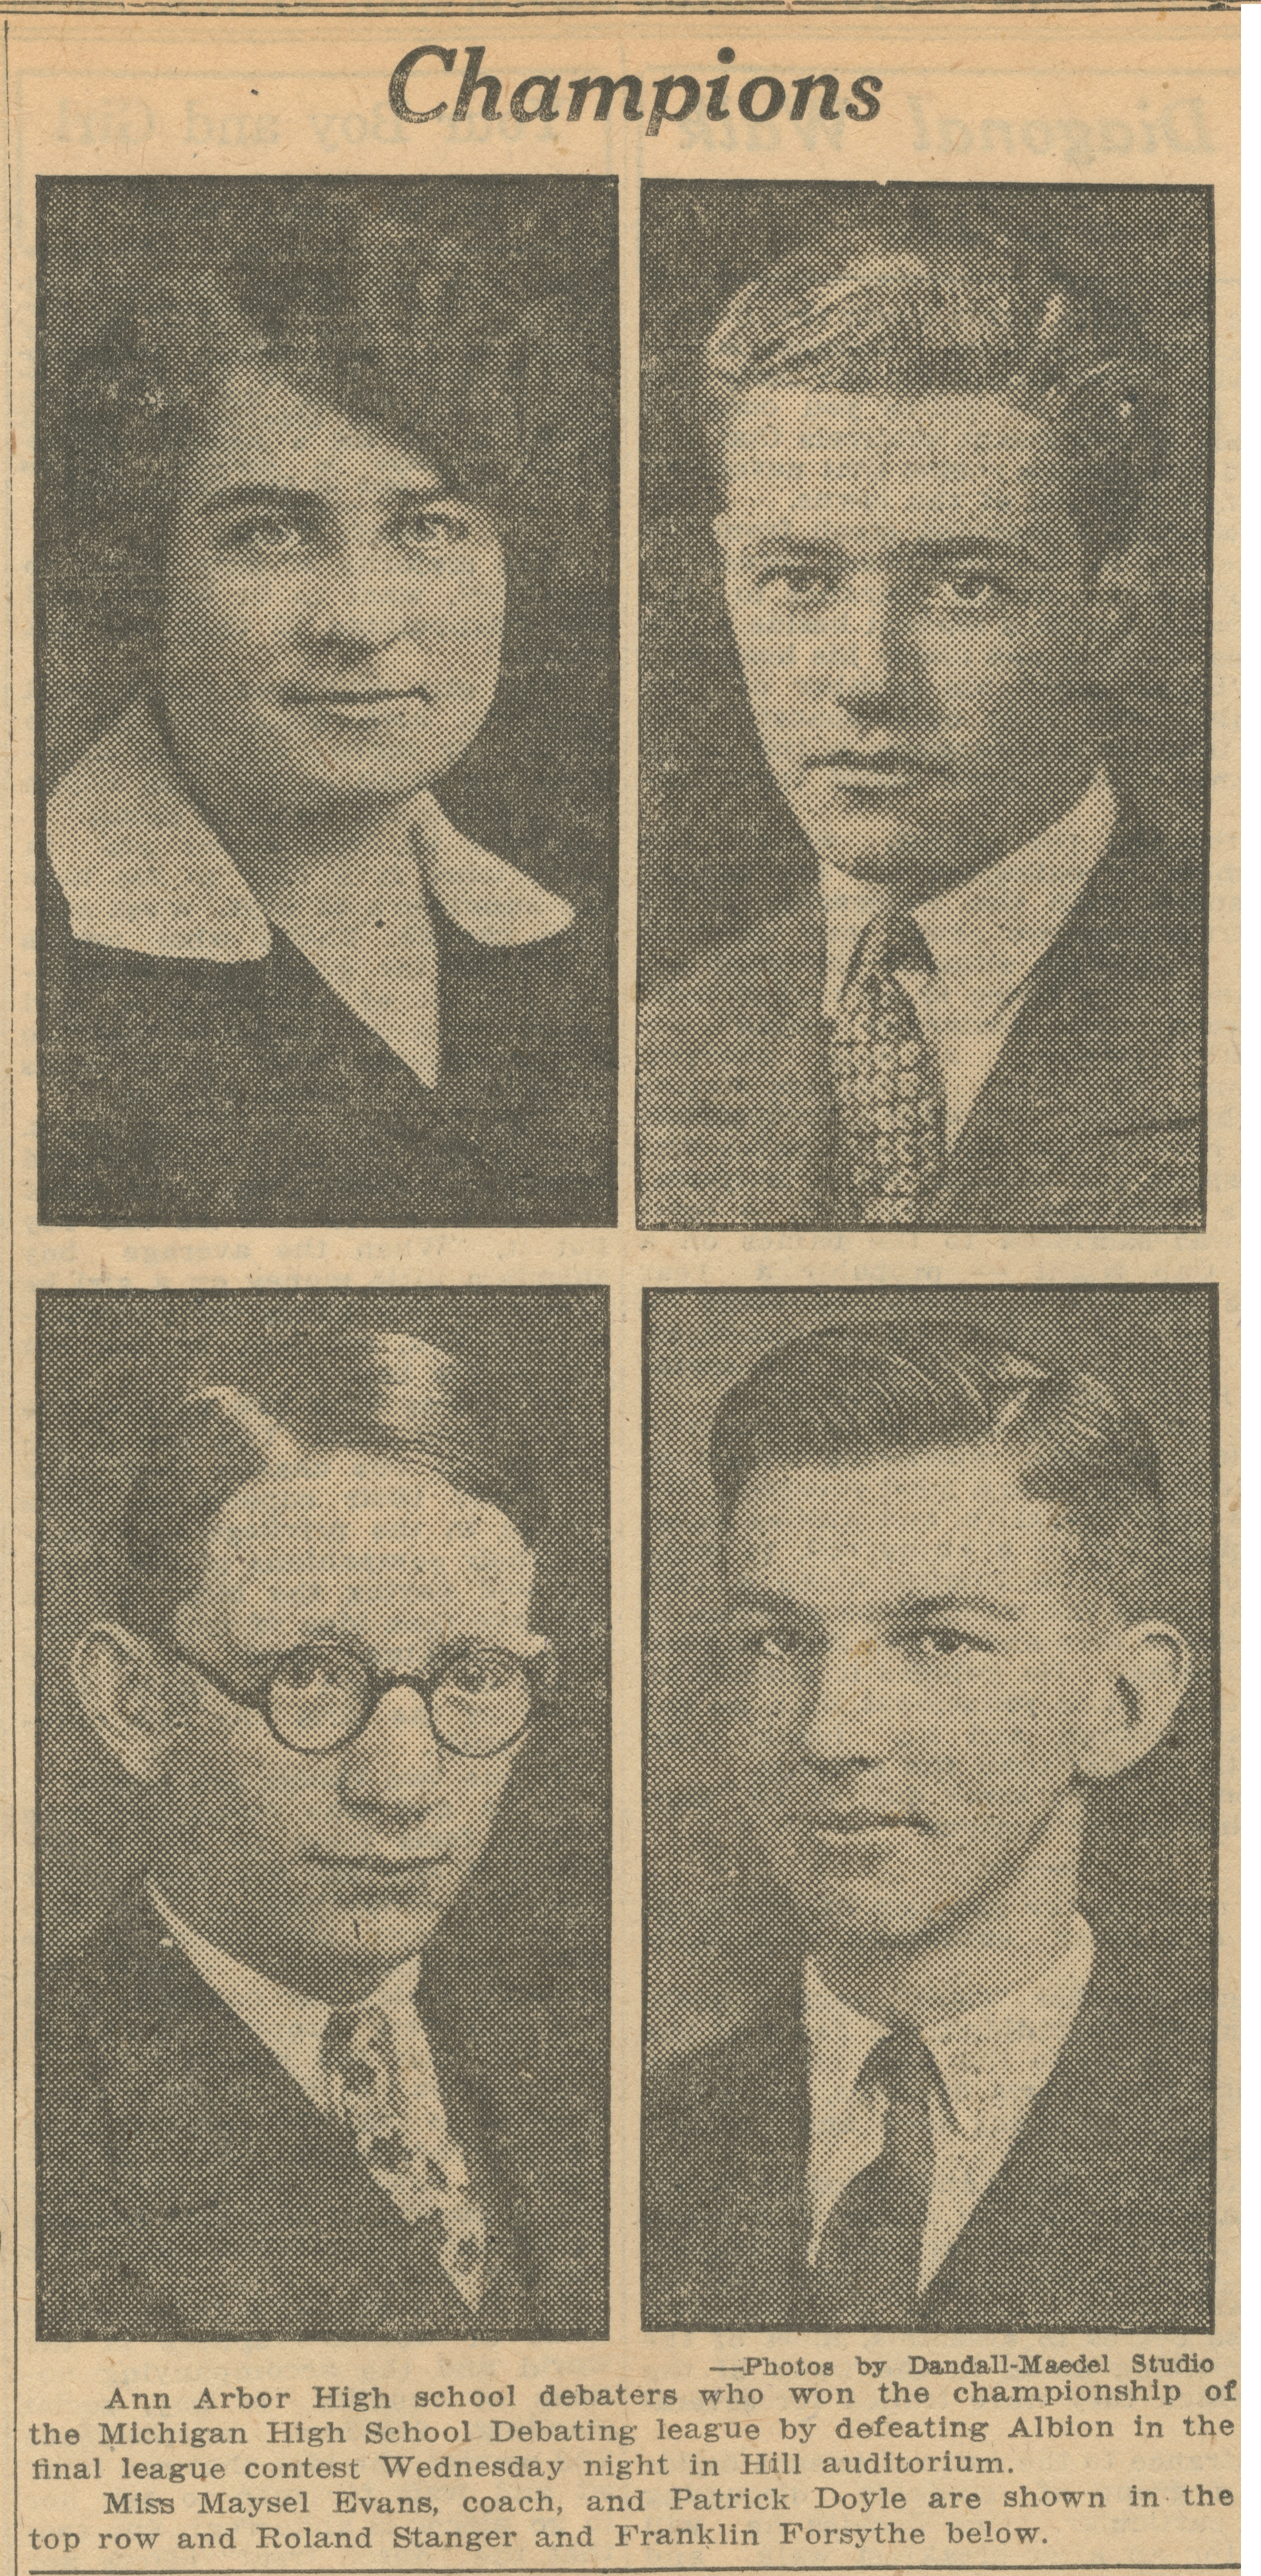 Champions: Ann Arbor High School Debaters - May 12, 1927 image